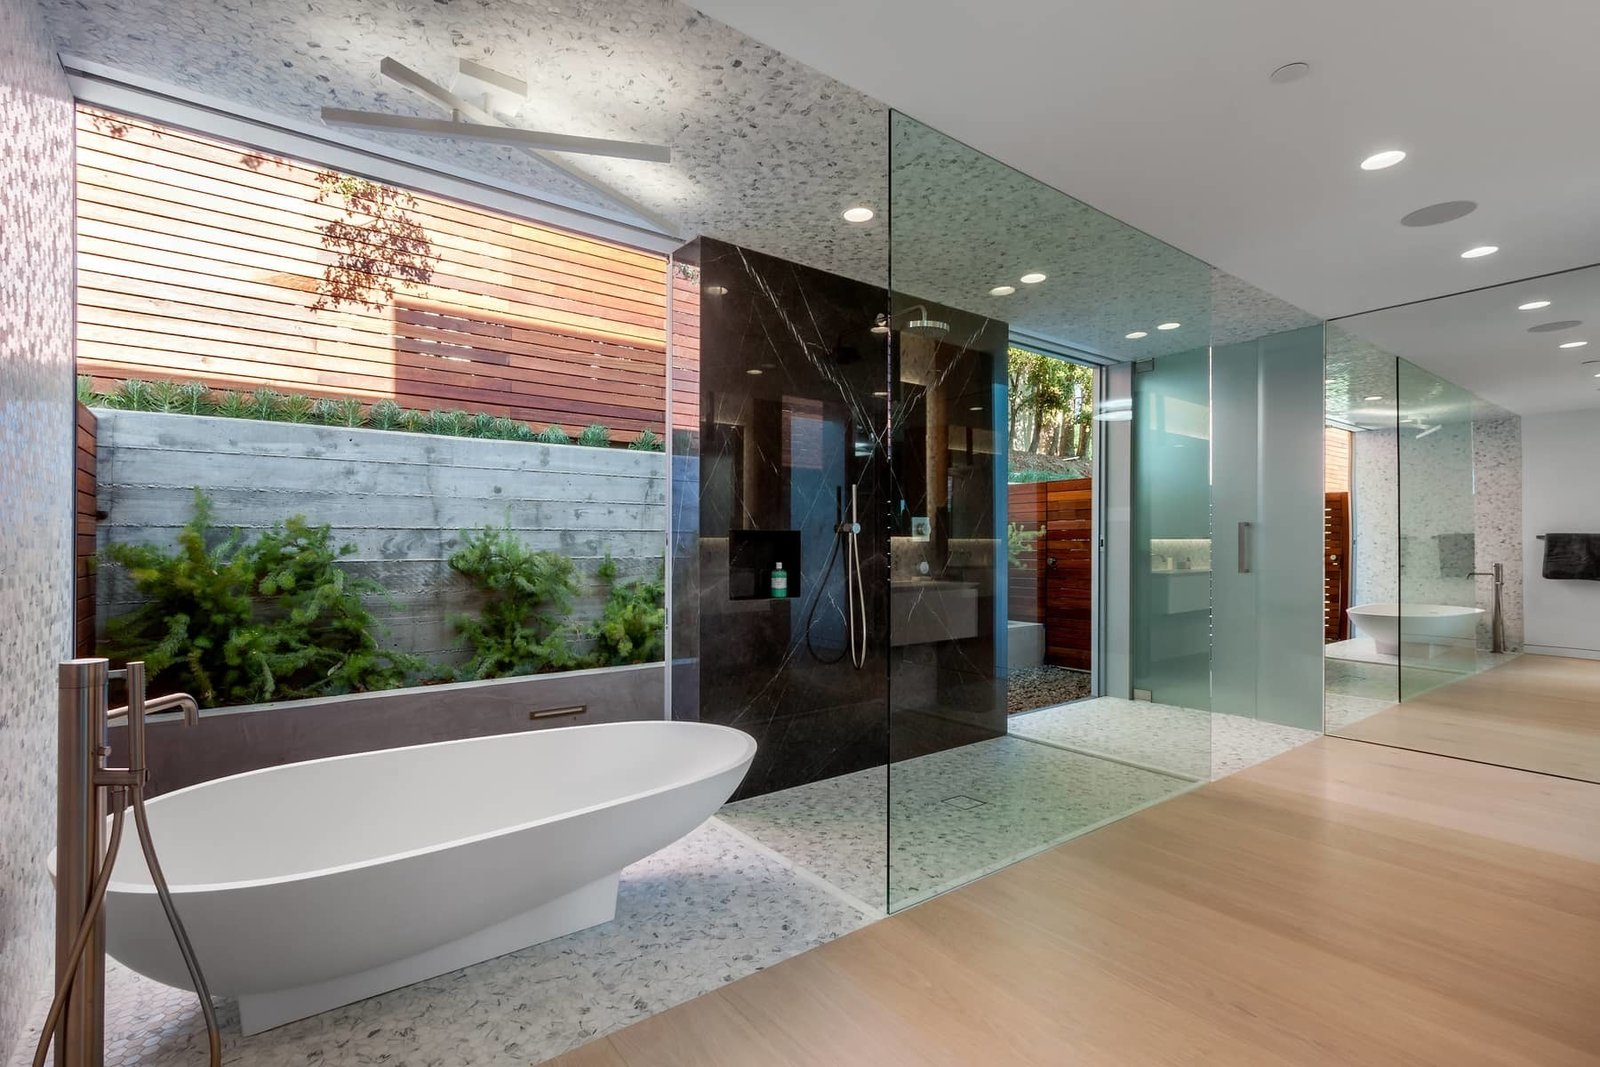 An Agape Spoon bathtub by Benedini Associati provides a sculptural focus in the master bathroom, which has sliding glass doors that open to a private garden area. A Celeb-Worthy Home in Beverly Hills Asks $7.4M - Photo 7 of 10